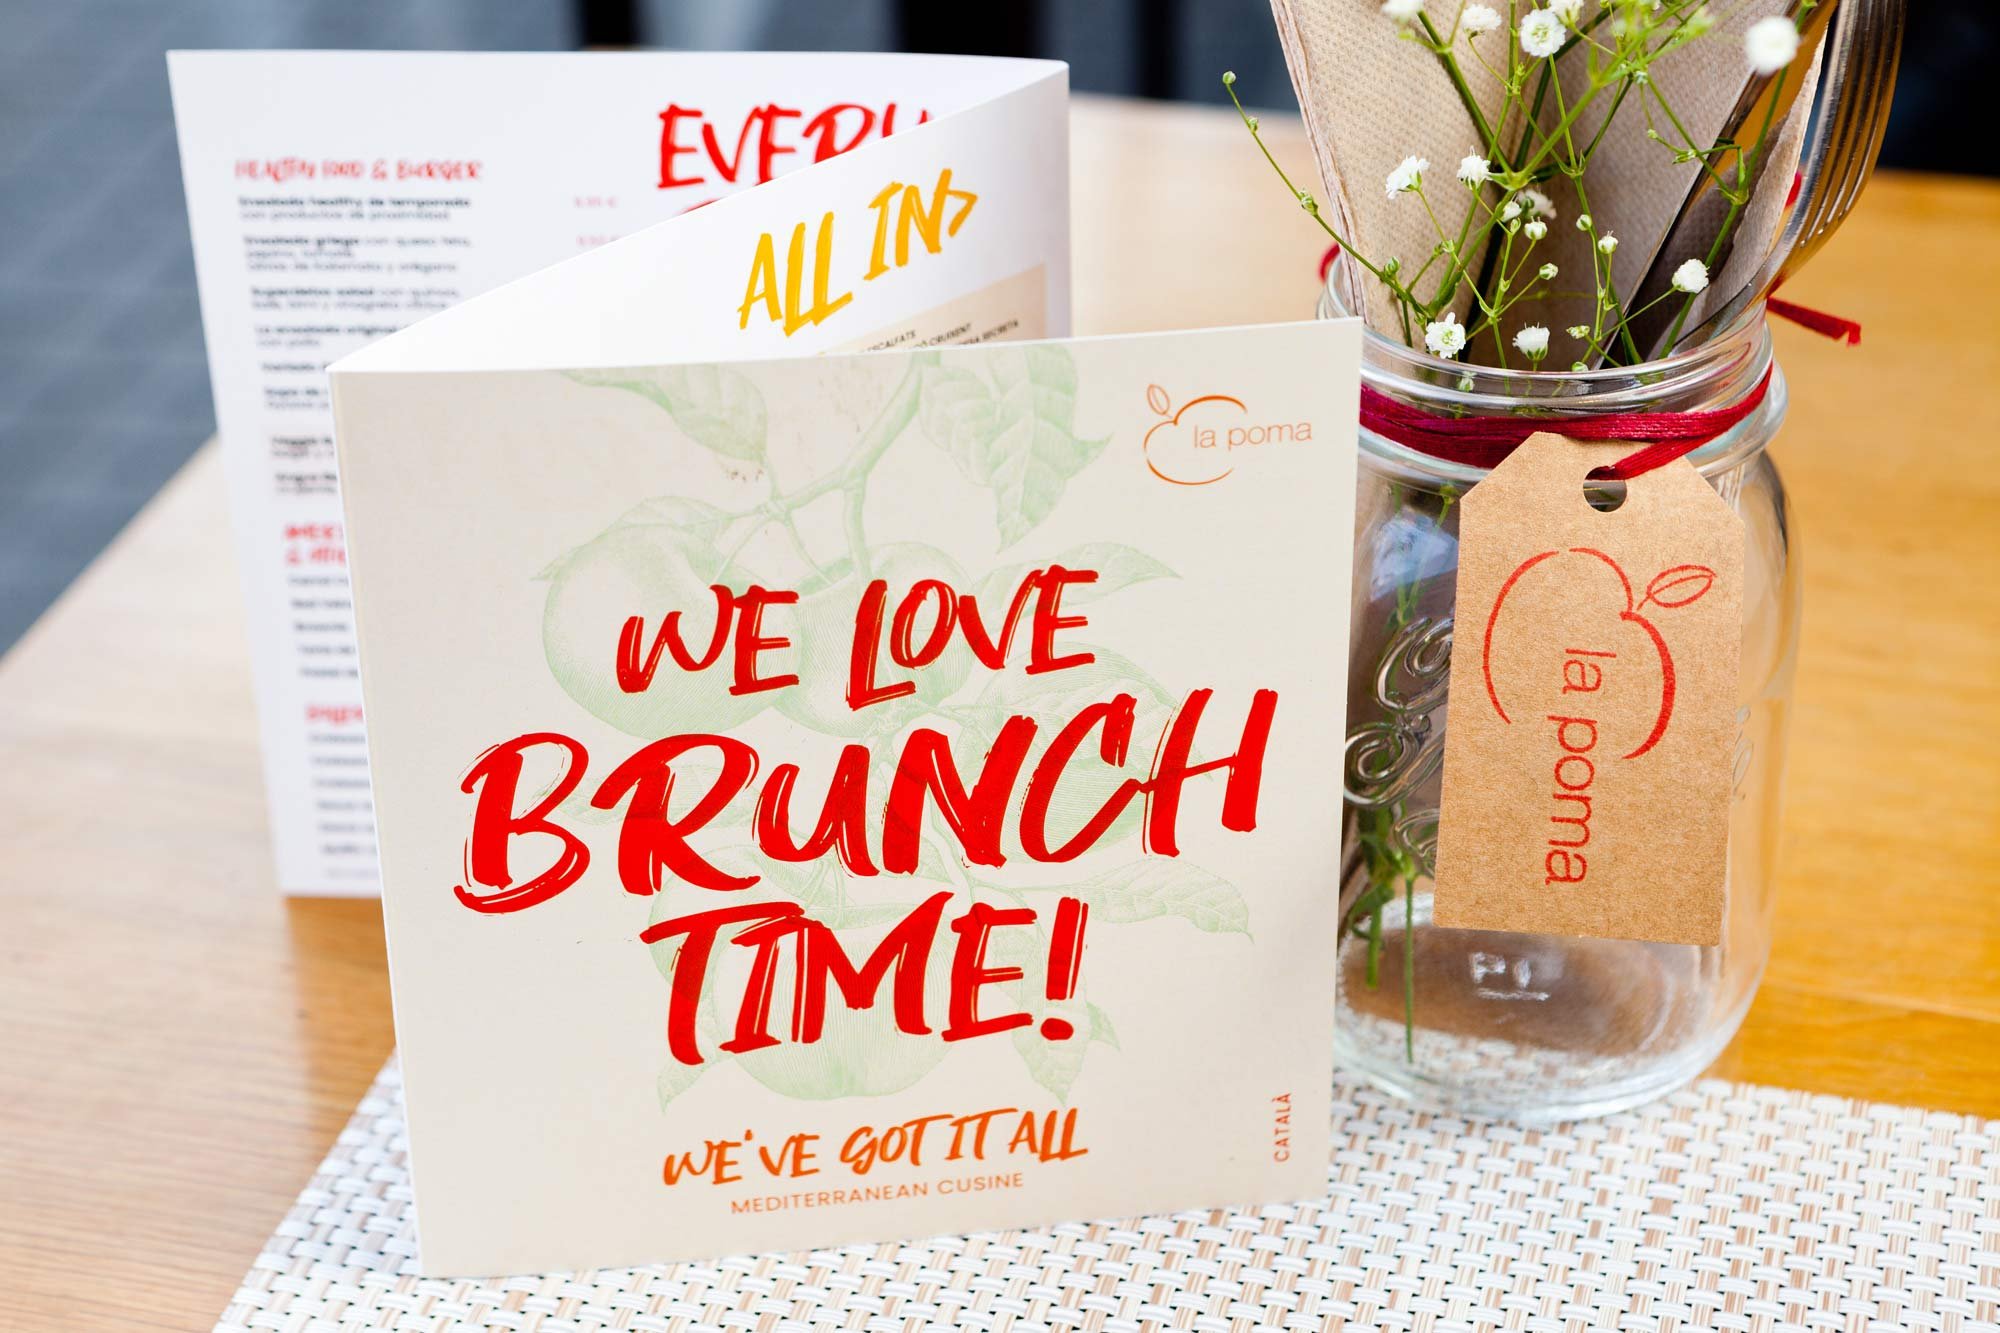 We-Love-Brunch-Time